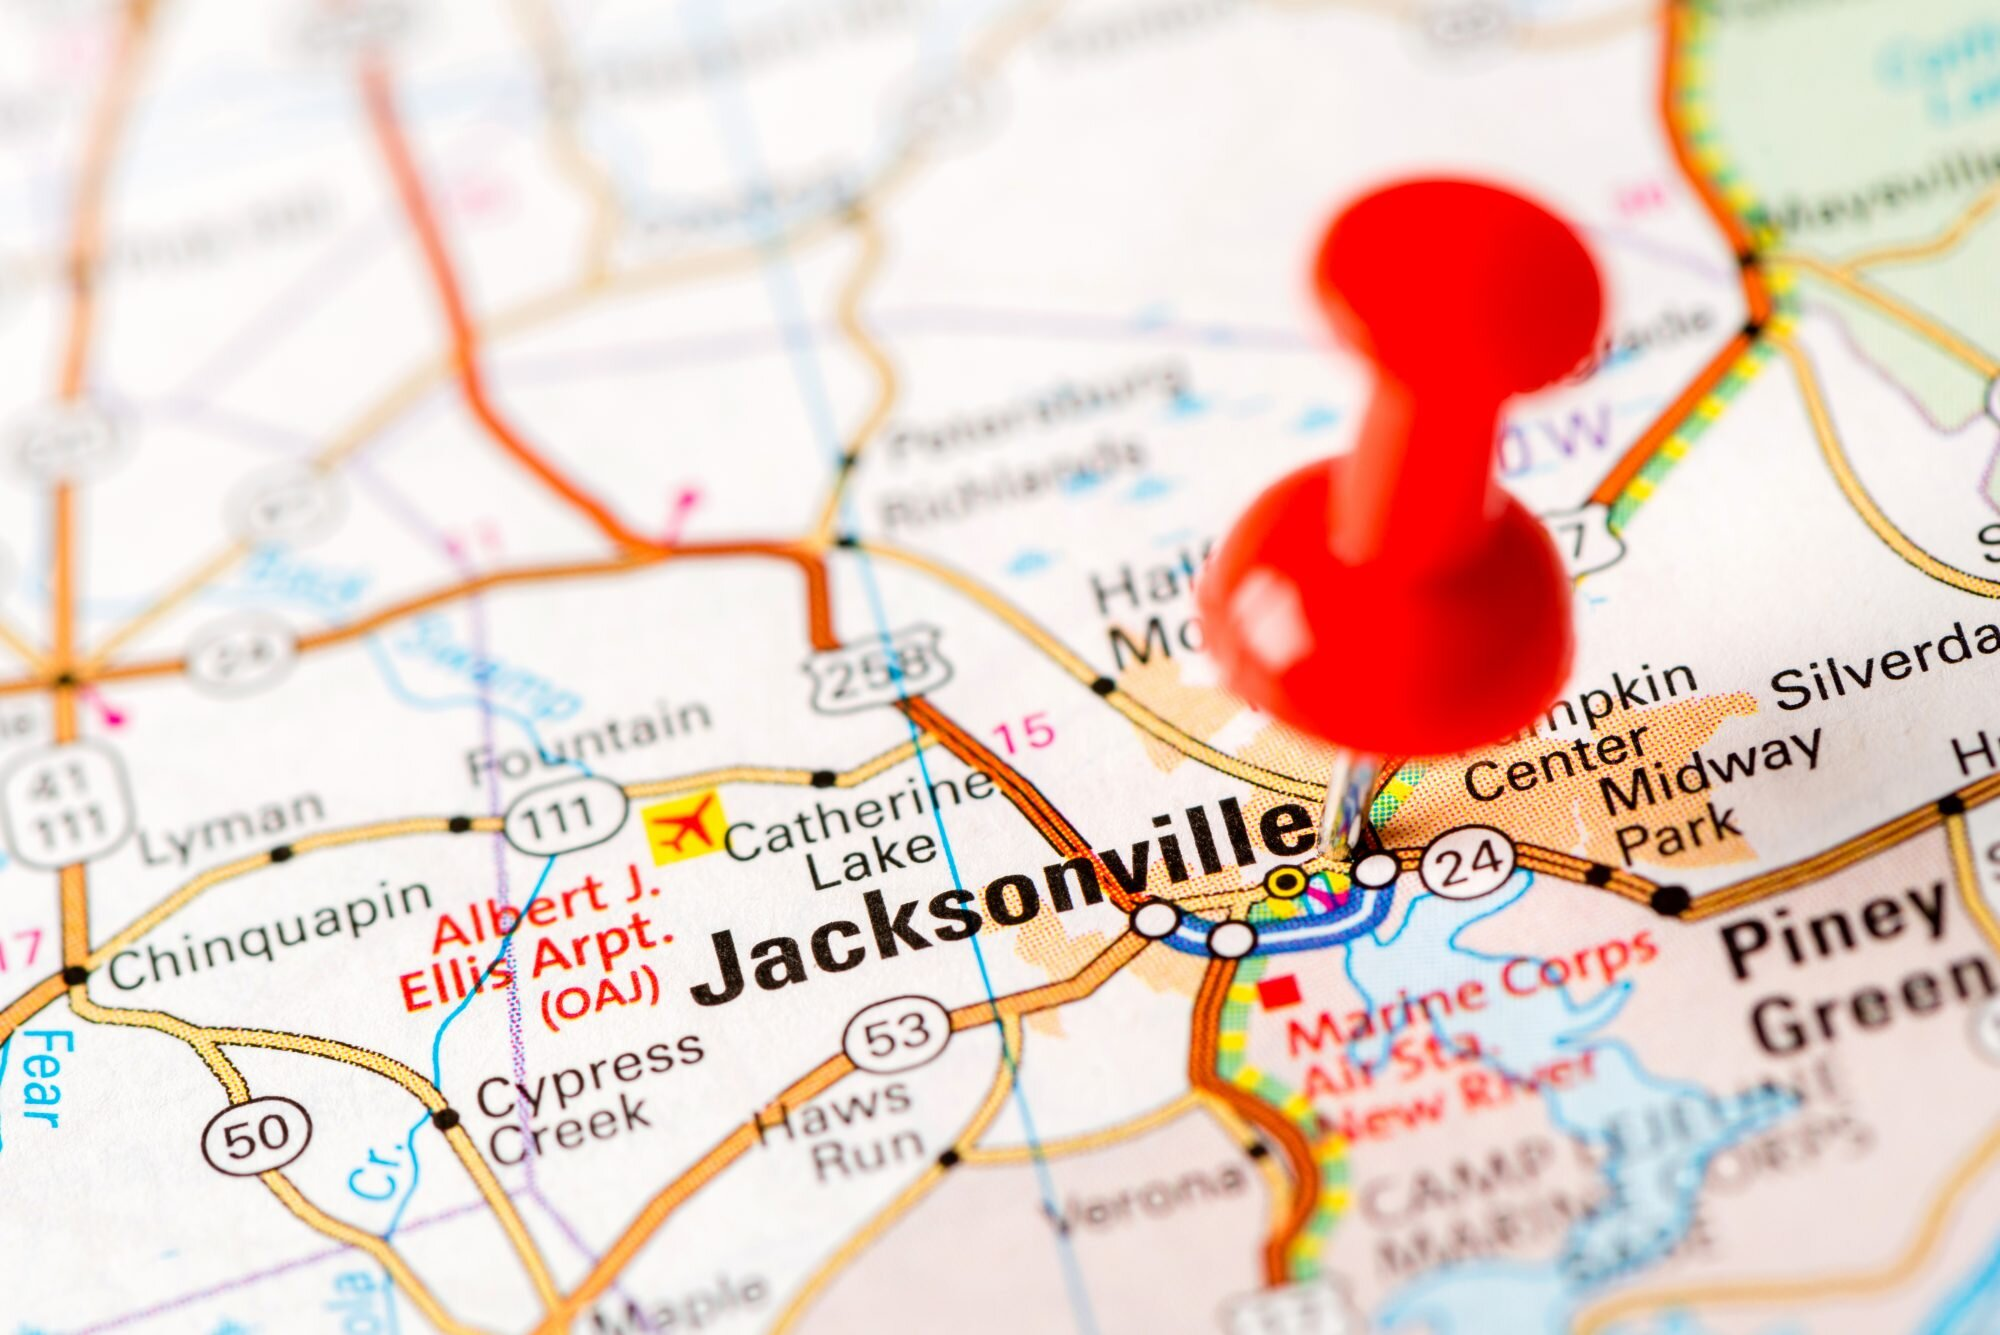 The Best of Jacksonville, NC | Southern Living Map Of Jacksonville Nc Activities on map of ferguson nc, map of north topsail island nc, map of orange co nc, map of oakland nc, map of thomasville nc, map of kitty hawk nc, map of melbourne nc, map of jackson tn, map of spartanburg nc, map of charlottesville nc, map of otto nc, map of gatesville nc, map of pisgah nc, map of ogden nc, map of porters neck nc, map of hog island nc, map of onslow county nc, map of moyock nc, map of rocky mount nc, map of sneads ferry nc,